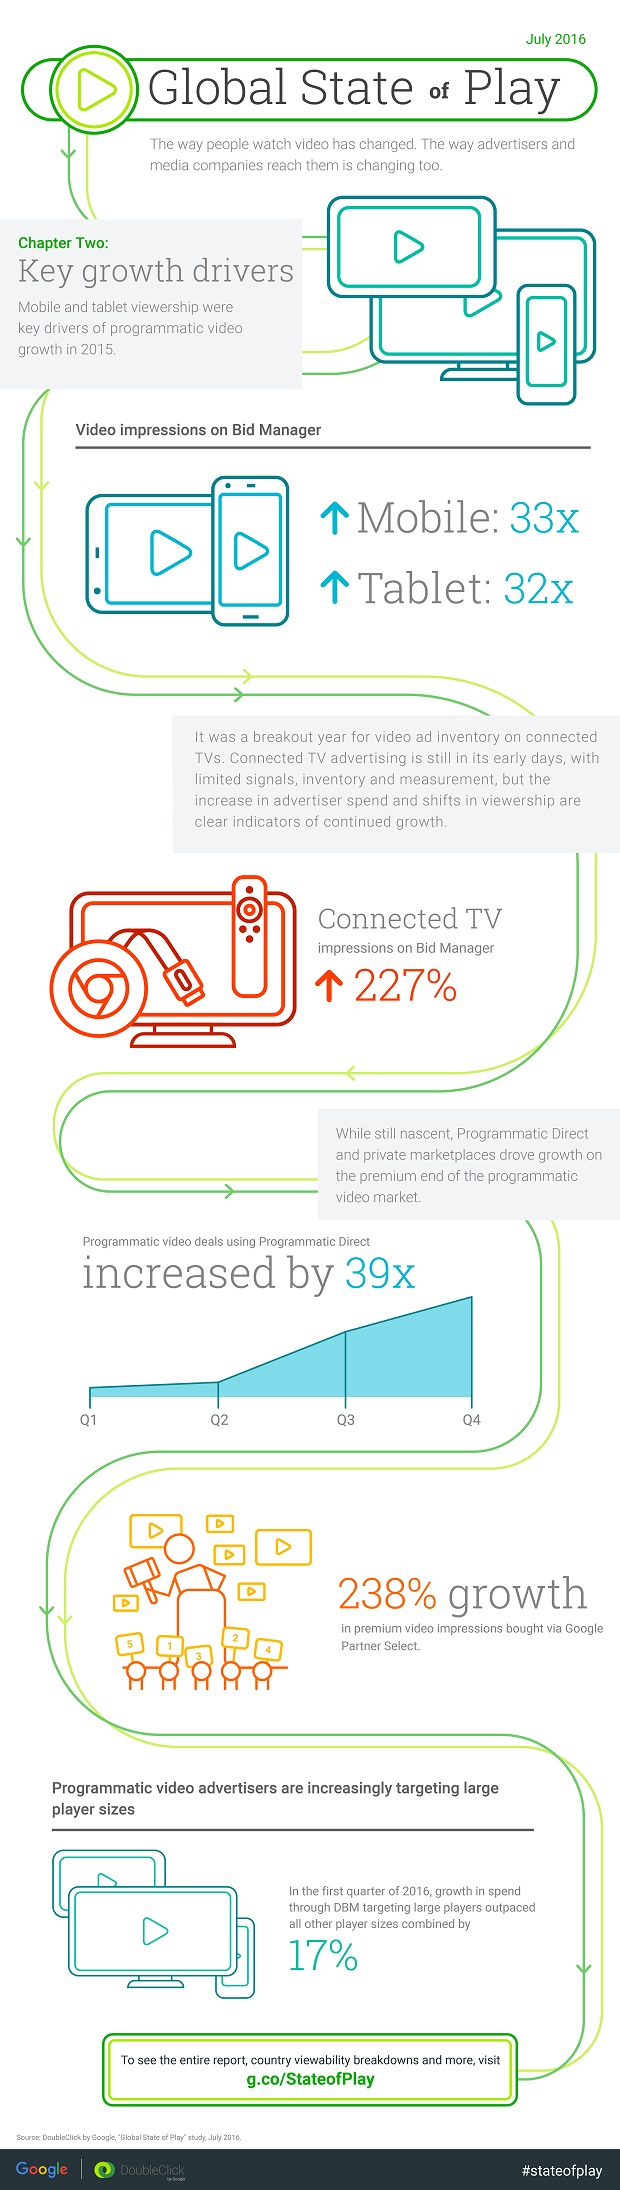 StateofPlay-VideoInsights-Infographic-Ch2.jpg